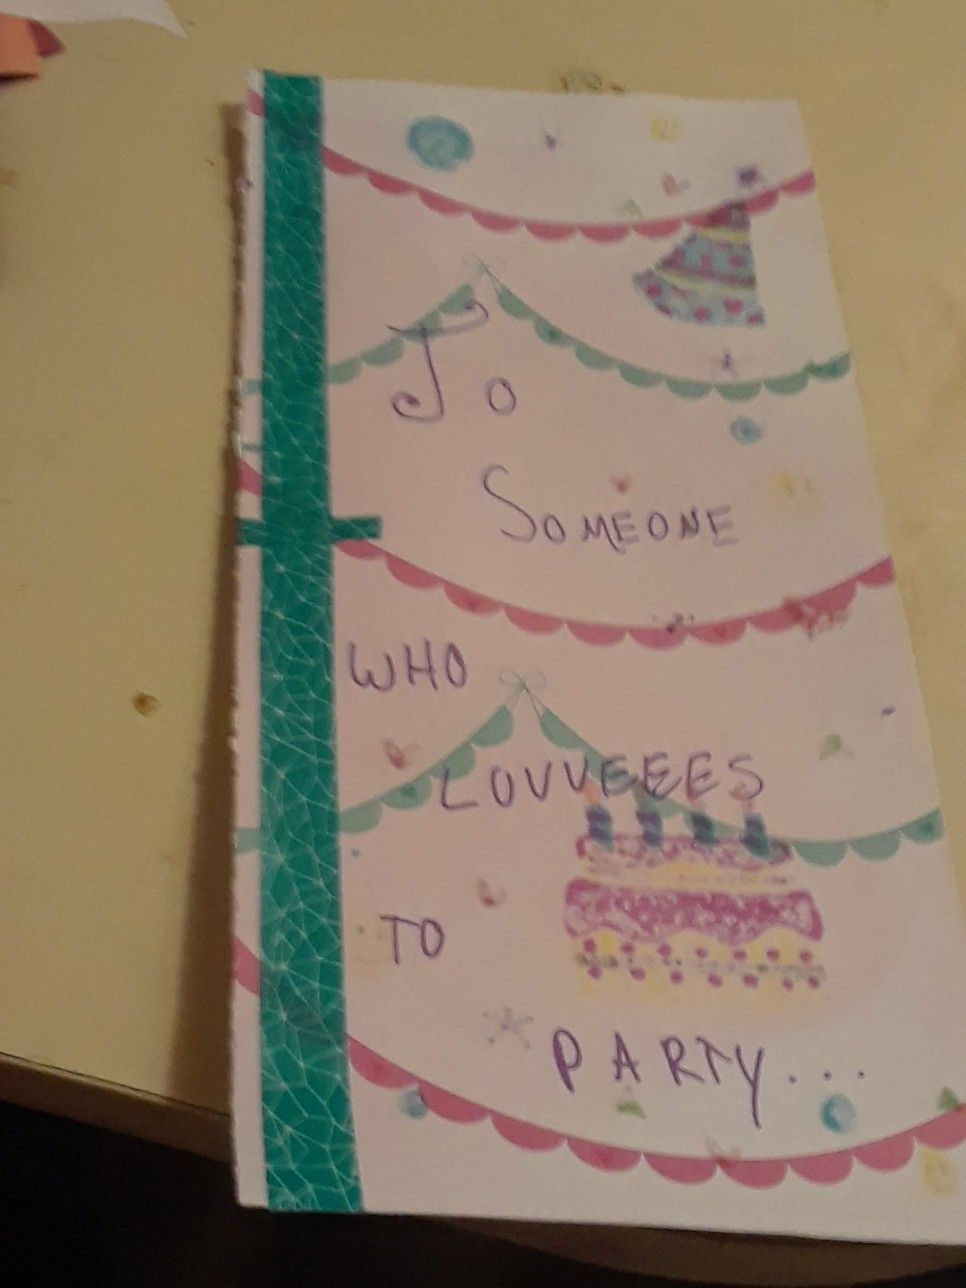 Birthday Card Made For March Of The Blanketeers By A Volunteer